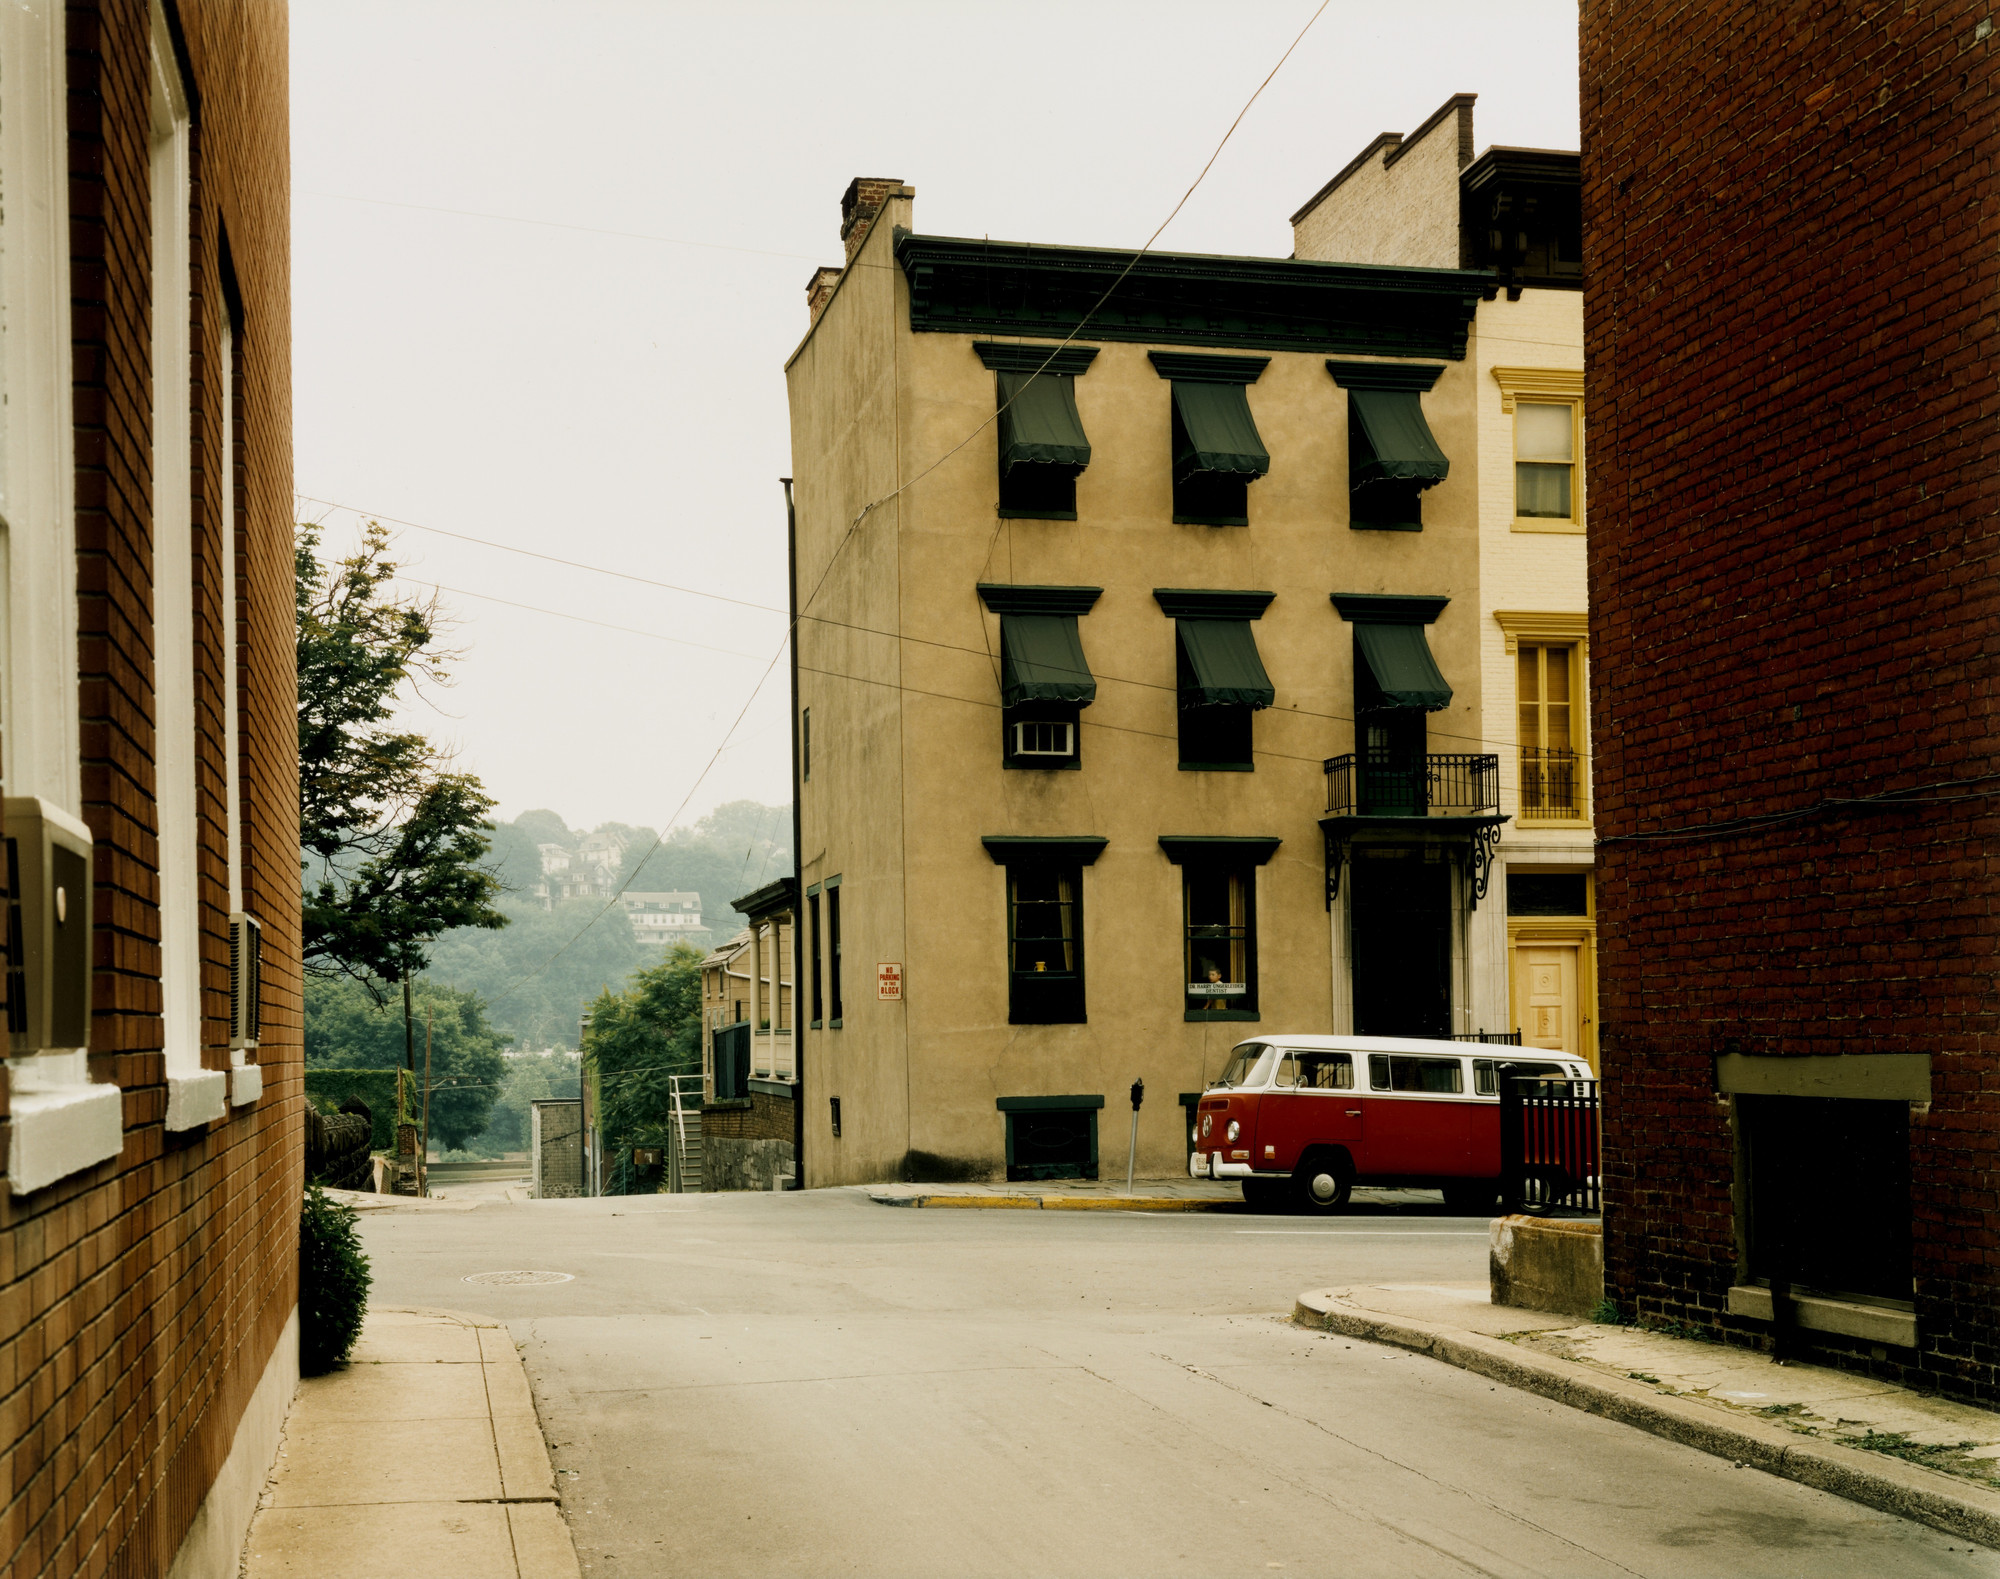 Stephen Shore. Church and 2nd Streets, Easton, Pennsylvania, June 20, 1974. 1974